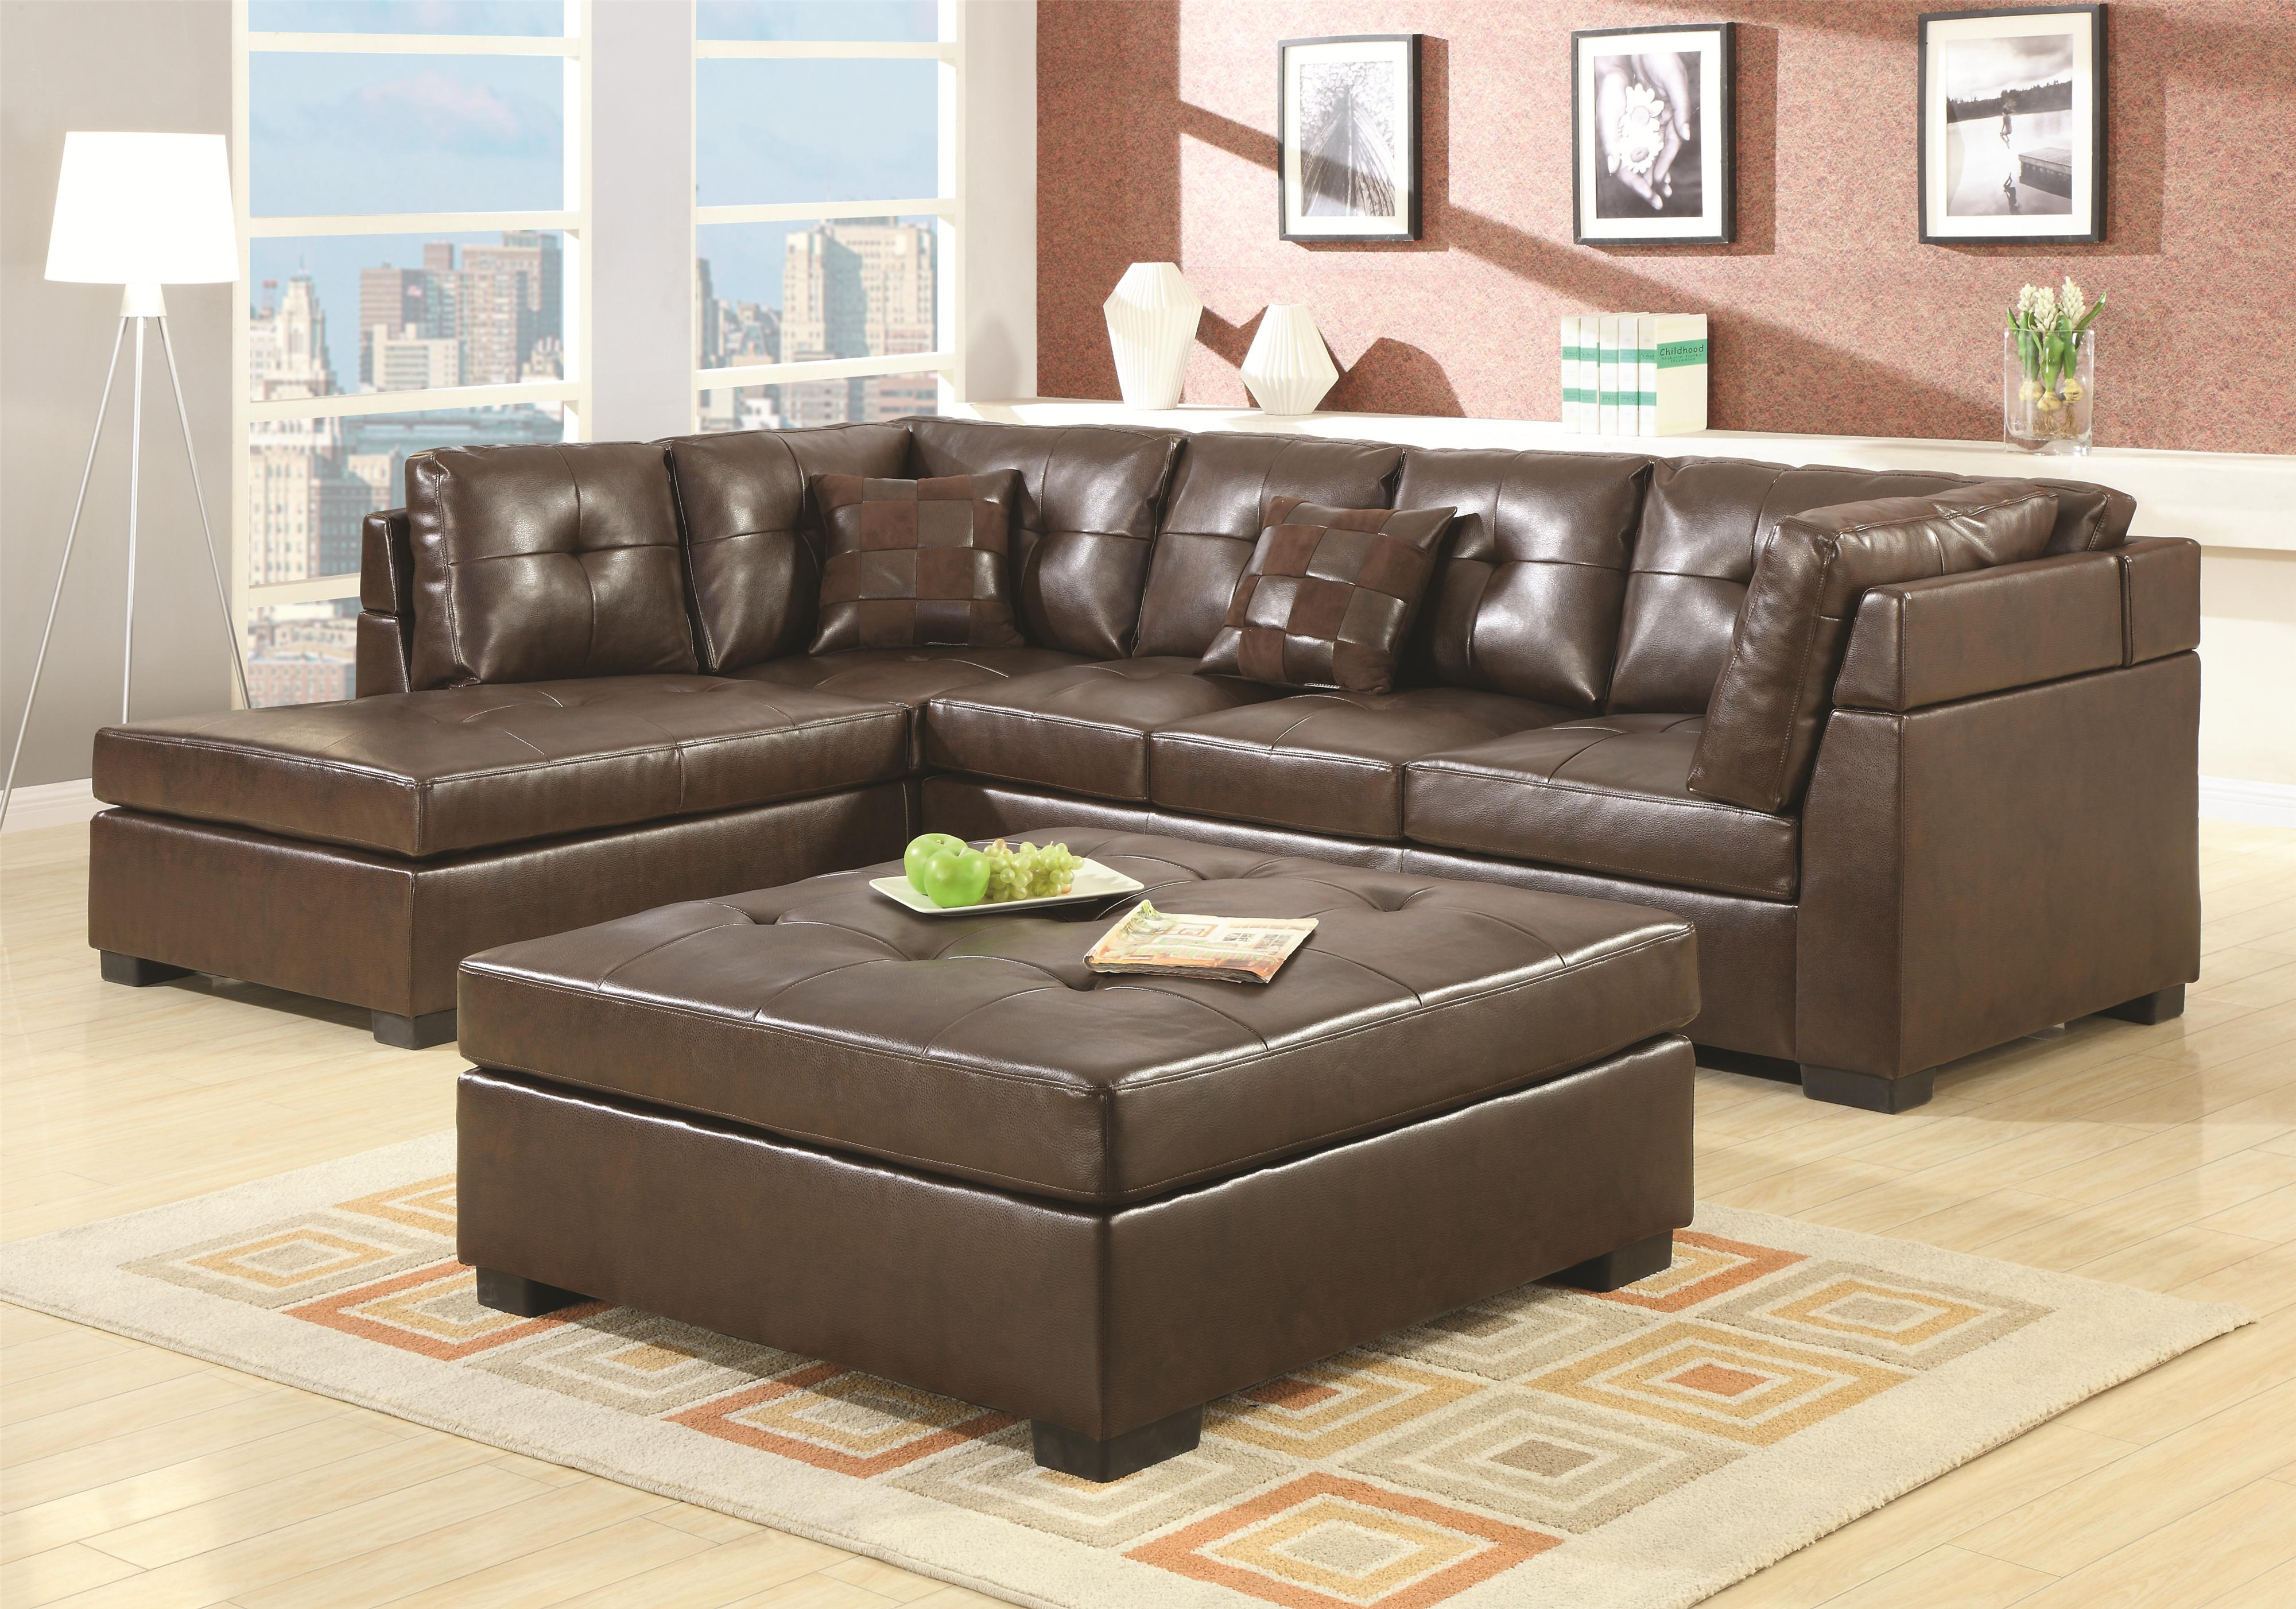 Darie Leather Sectional Sofa with Left-Side Chaise by Coaster